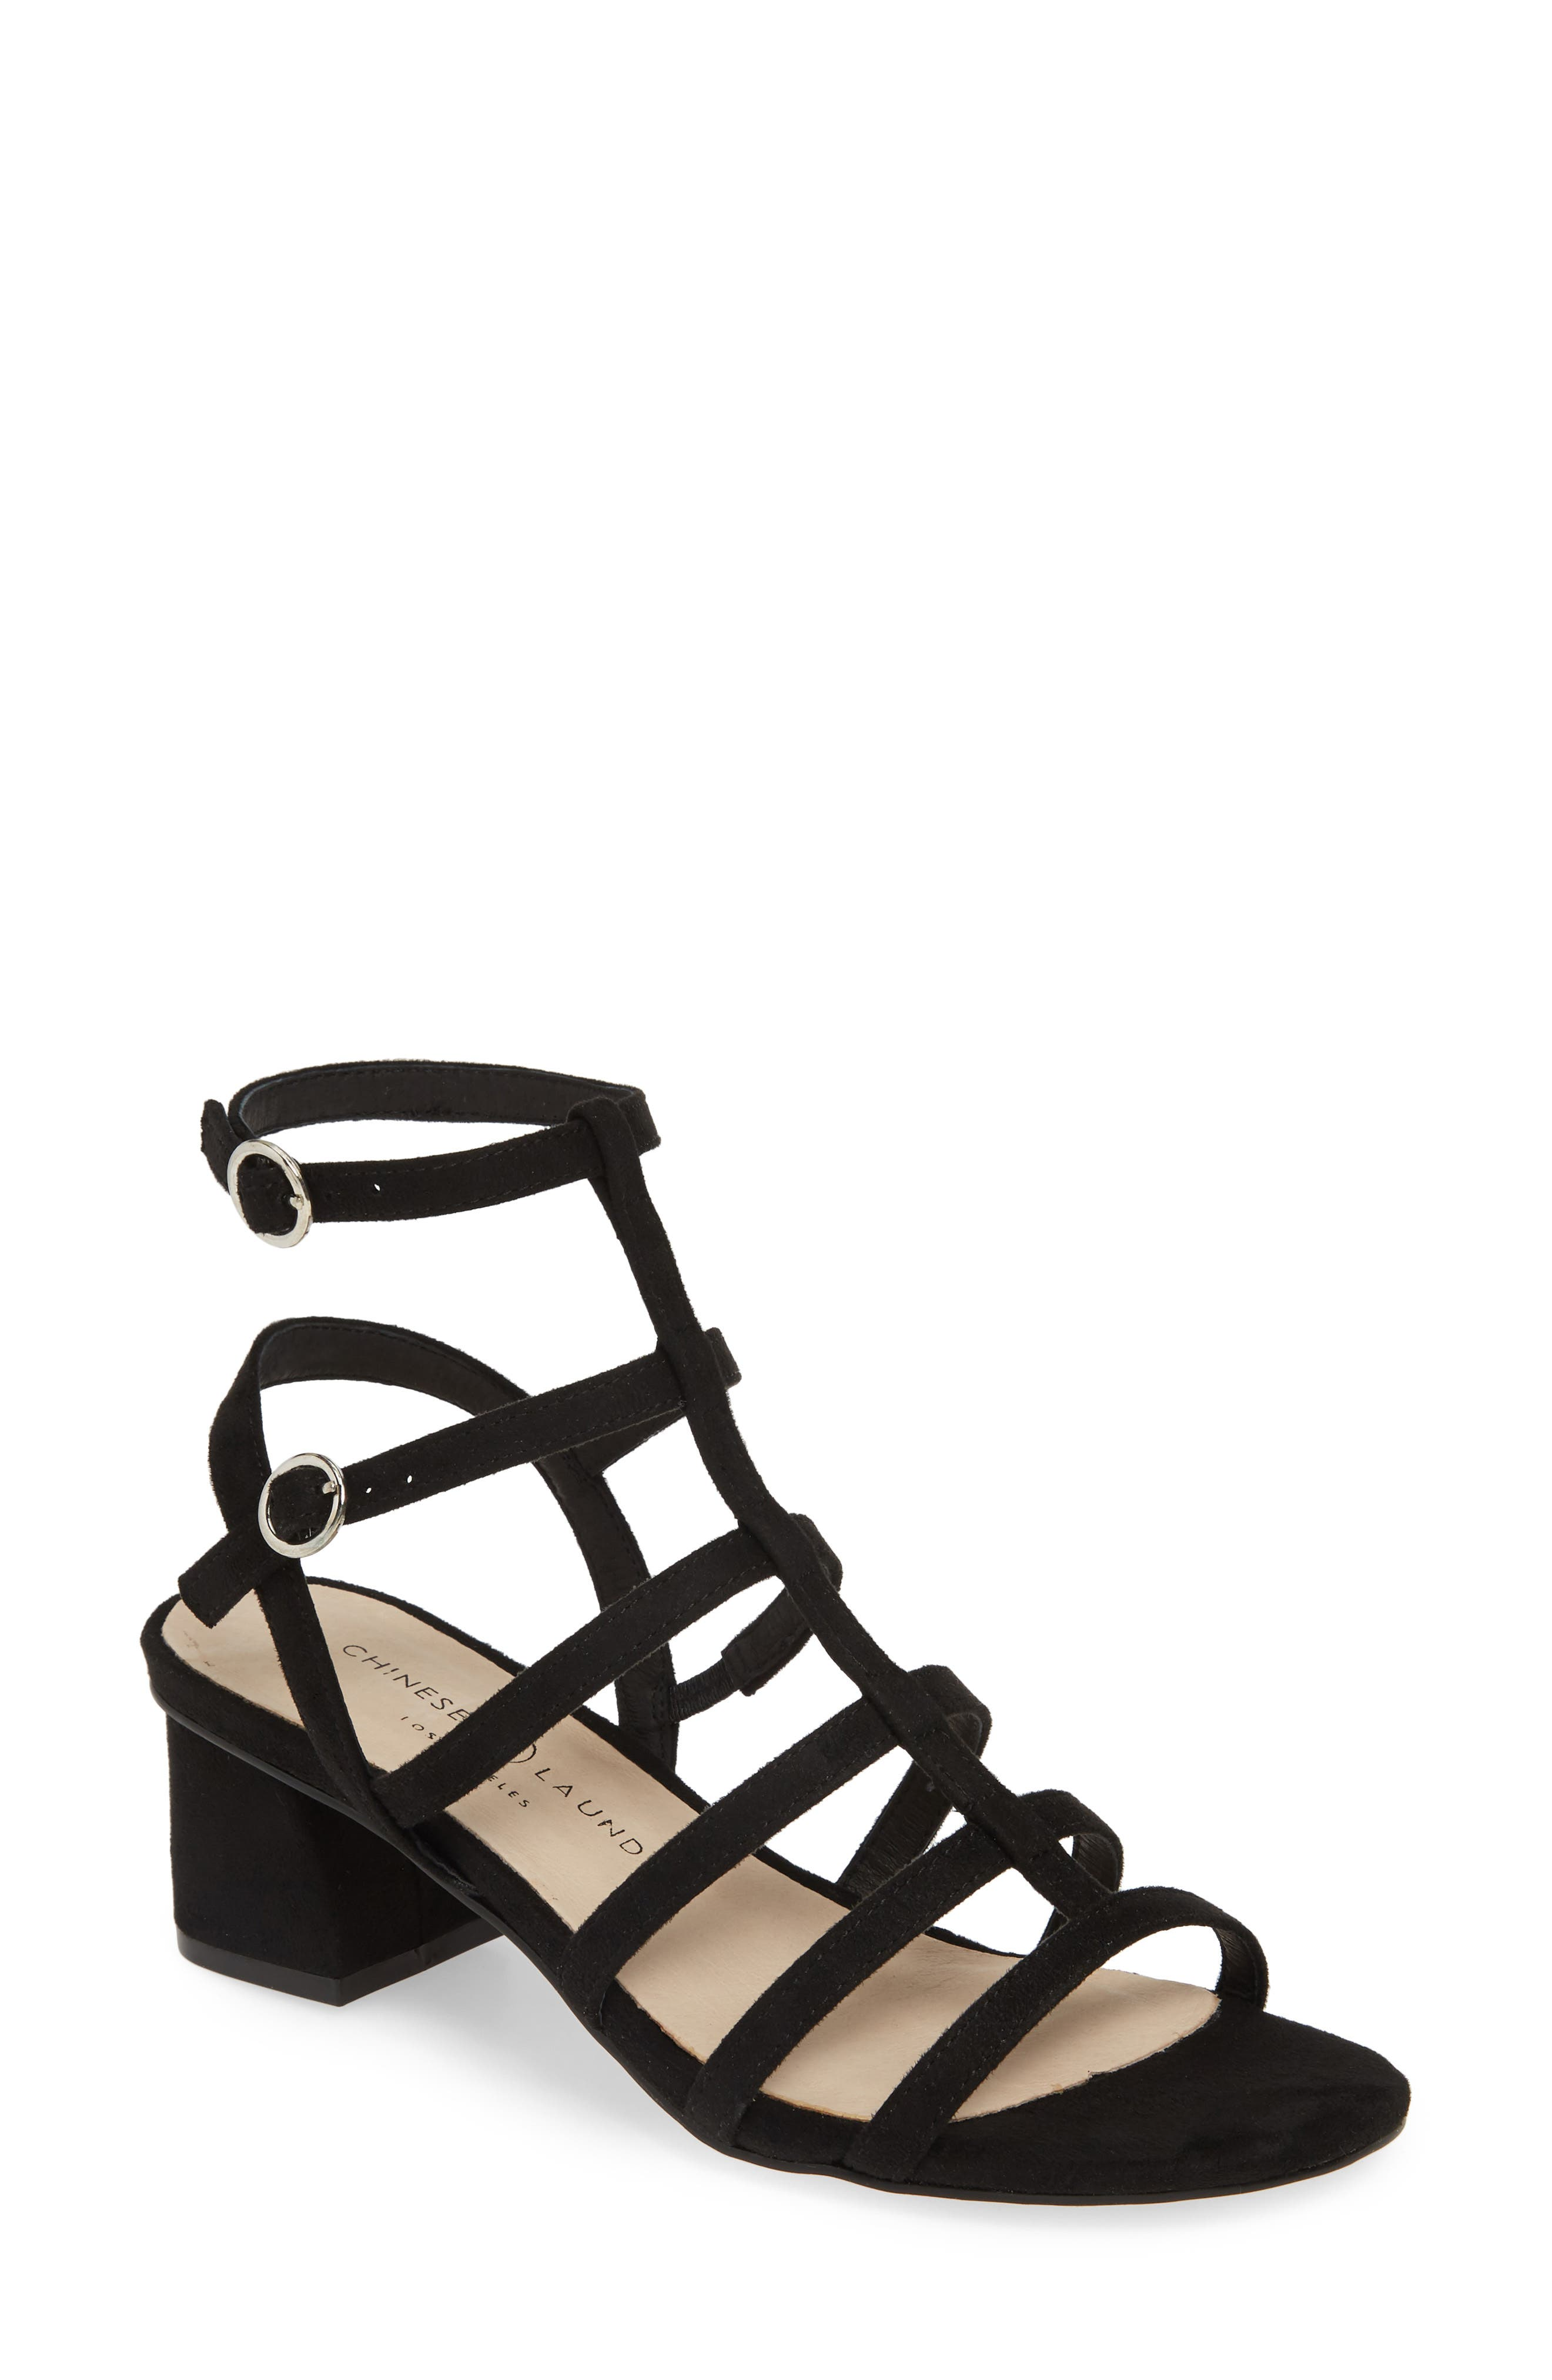 Monroe Strappy Cage Sandal by Chinese Laundry